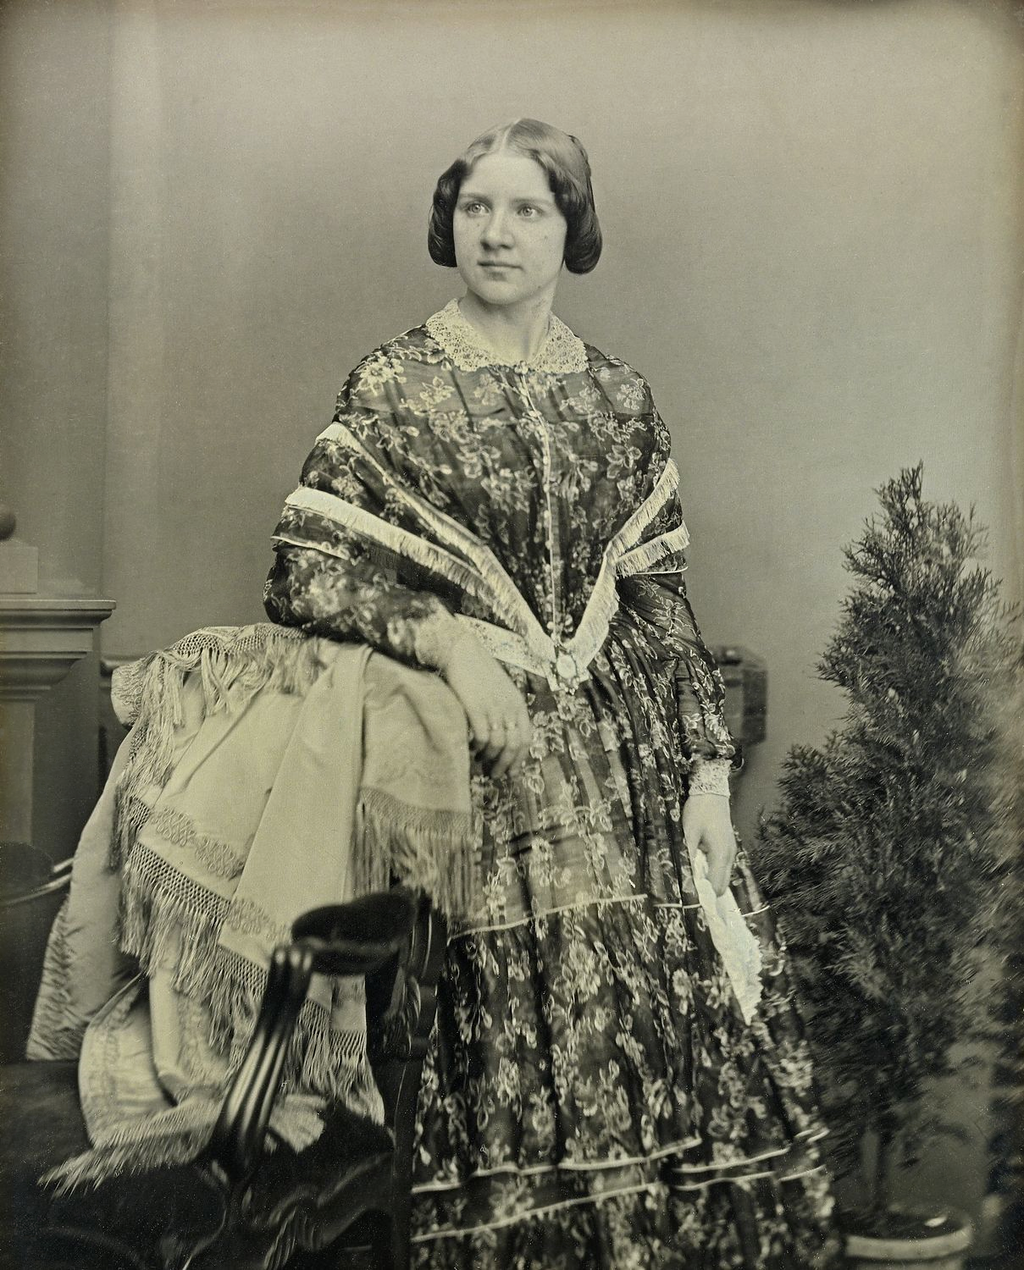 <b>Jenny Lind</b>     	</br>Daguerreotype of Jenny Lind taken in 1848 by William Edward Kilburn</br><br/><b>Source: </b><i>Public Domain. https://commons.wikimedia.org/wiki/File:Jenny_Lind_by_William_Edward_Kilburn,_1848.png#/media/File:Jenny_Lind_by_William_Edward_Kilburn,_1848_restored.png</i>